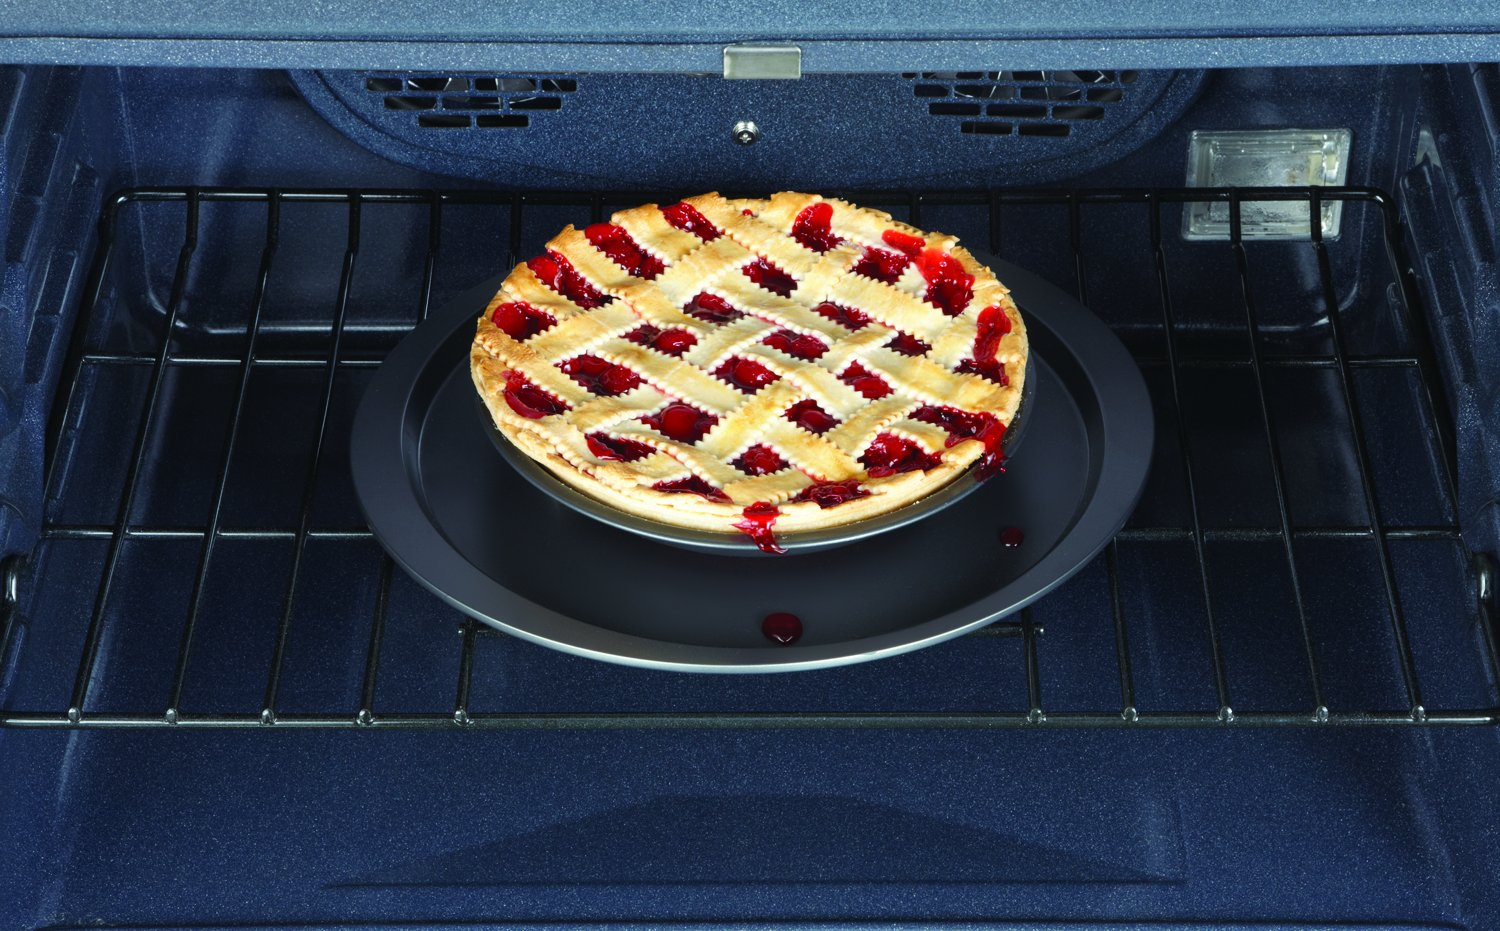 recipe: how to make pie in microwave oven [30]